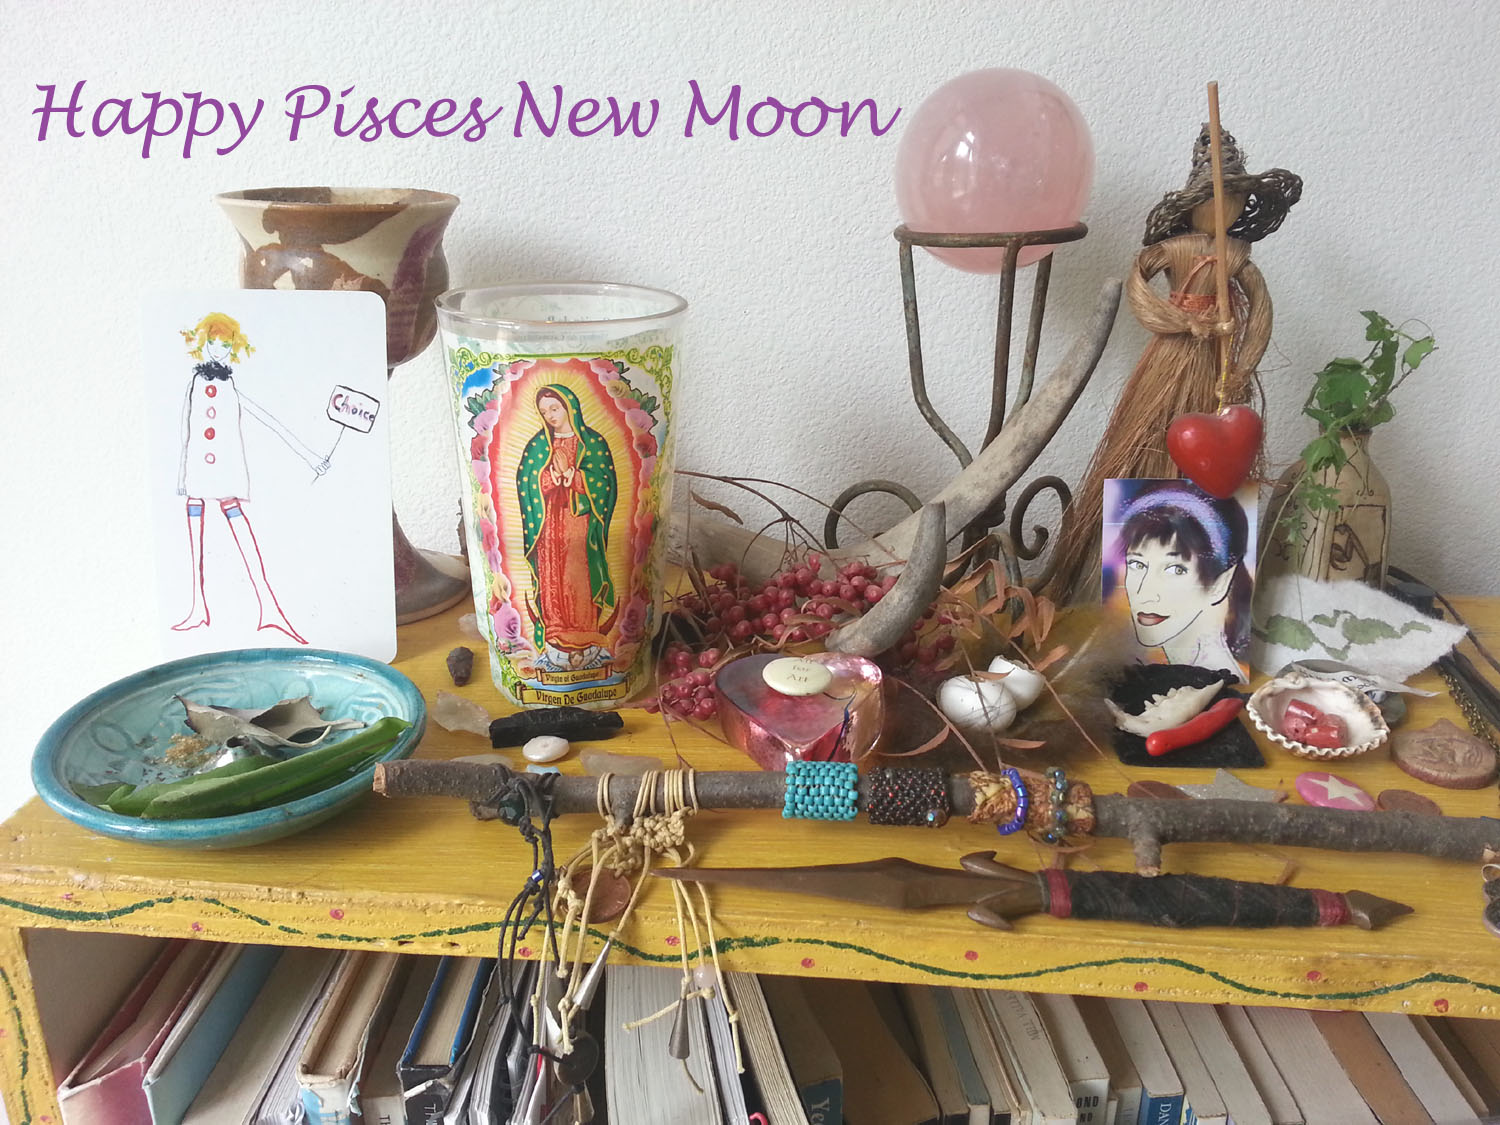 Pisces New Moon Altar by Kathy Crabbe